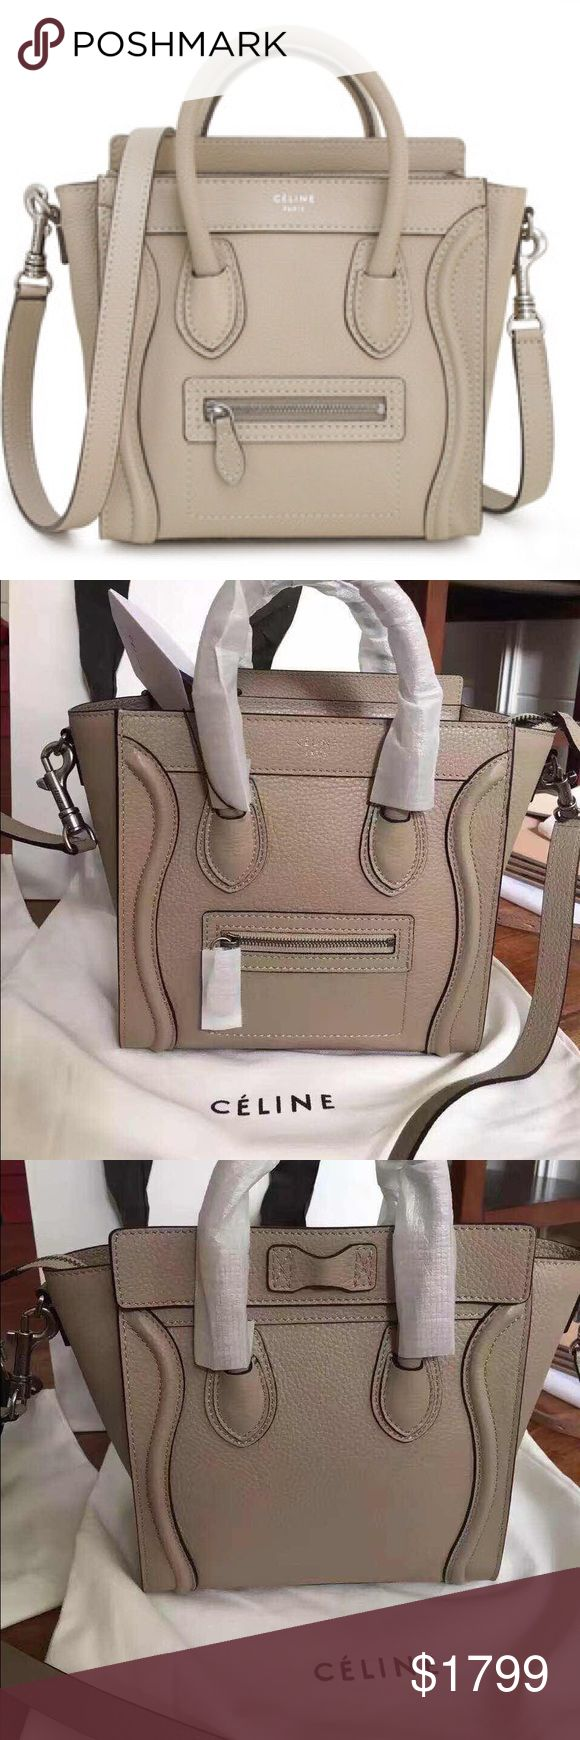 Authentic new Celine nano in taupe beige Authentic new Celine taupe beige nano bag -purchased in Celine boutique / this was gifted item and haven't used it at all it is made of drummed Celine leather inside is suede made in Italy and I am selling this because I have similar color in nano bag / comes with carebooklet Celine Bags Mini Bags